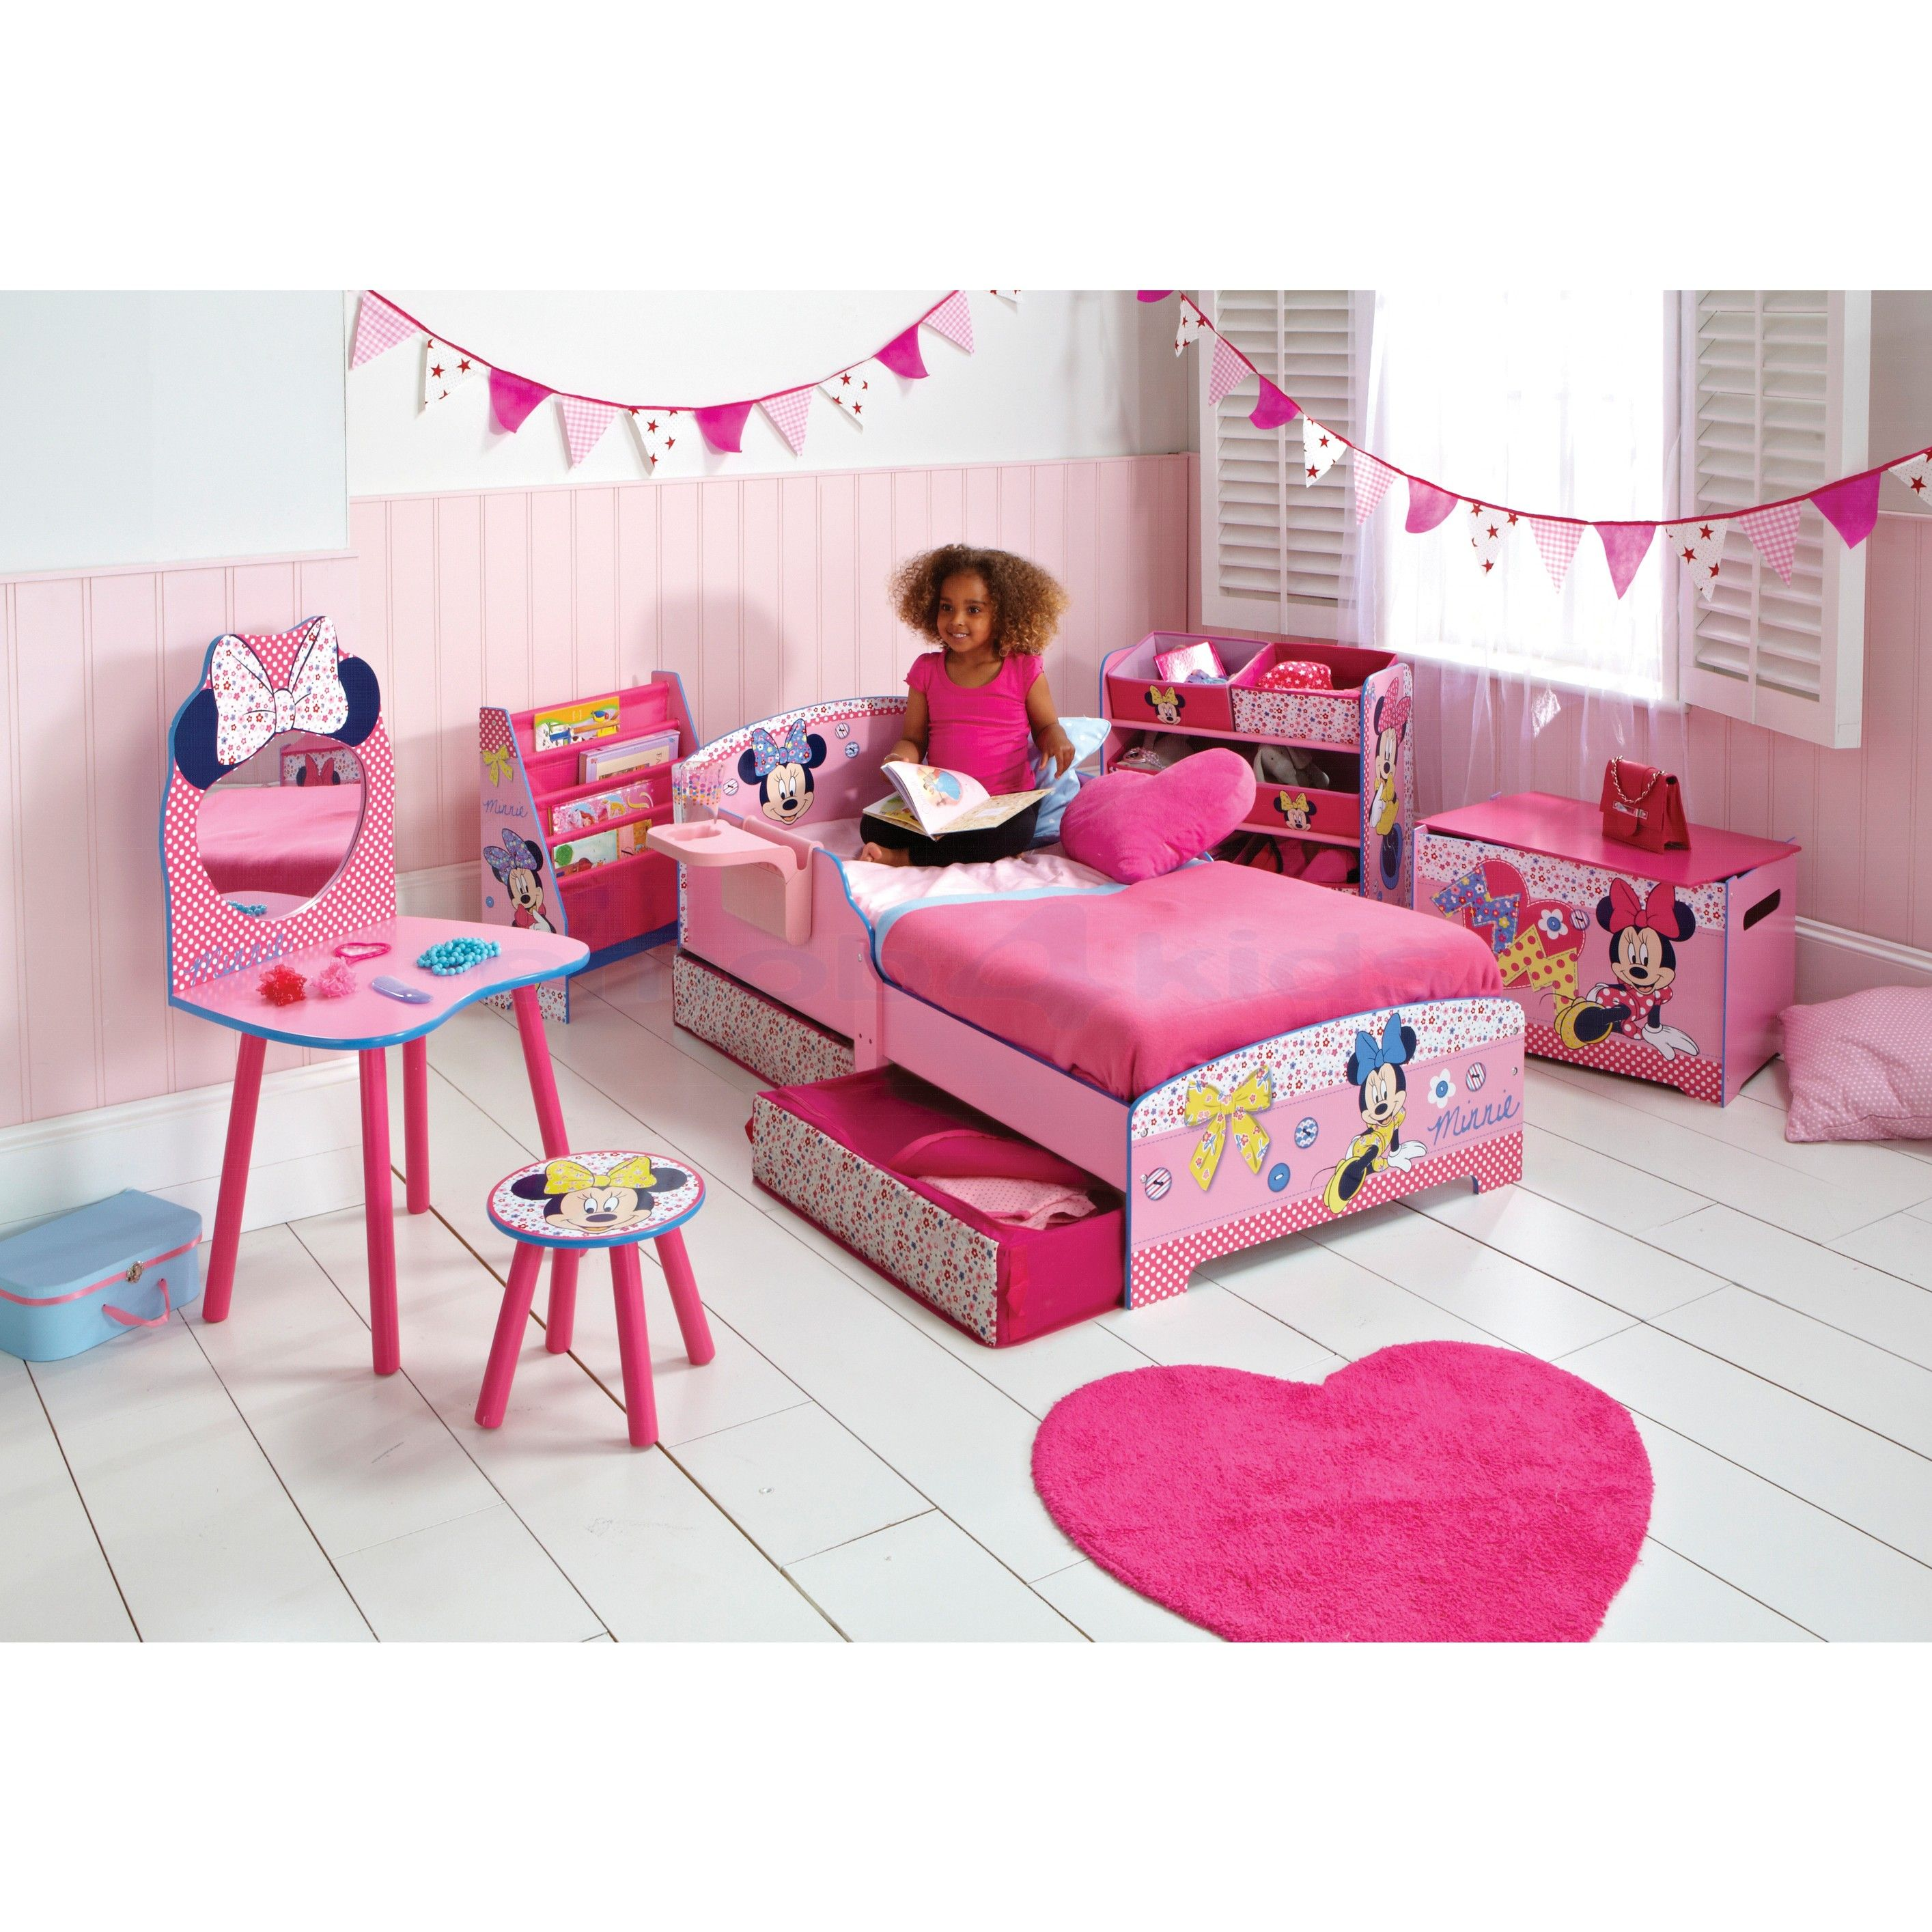 ruime keuze aan minnie mouse spullen voor in jouw. Black Bedroom Furniture Sets. Home Design Ideas